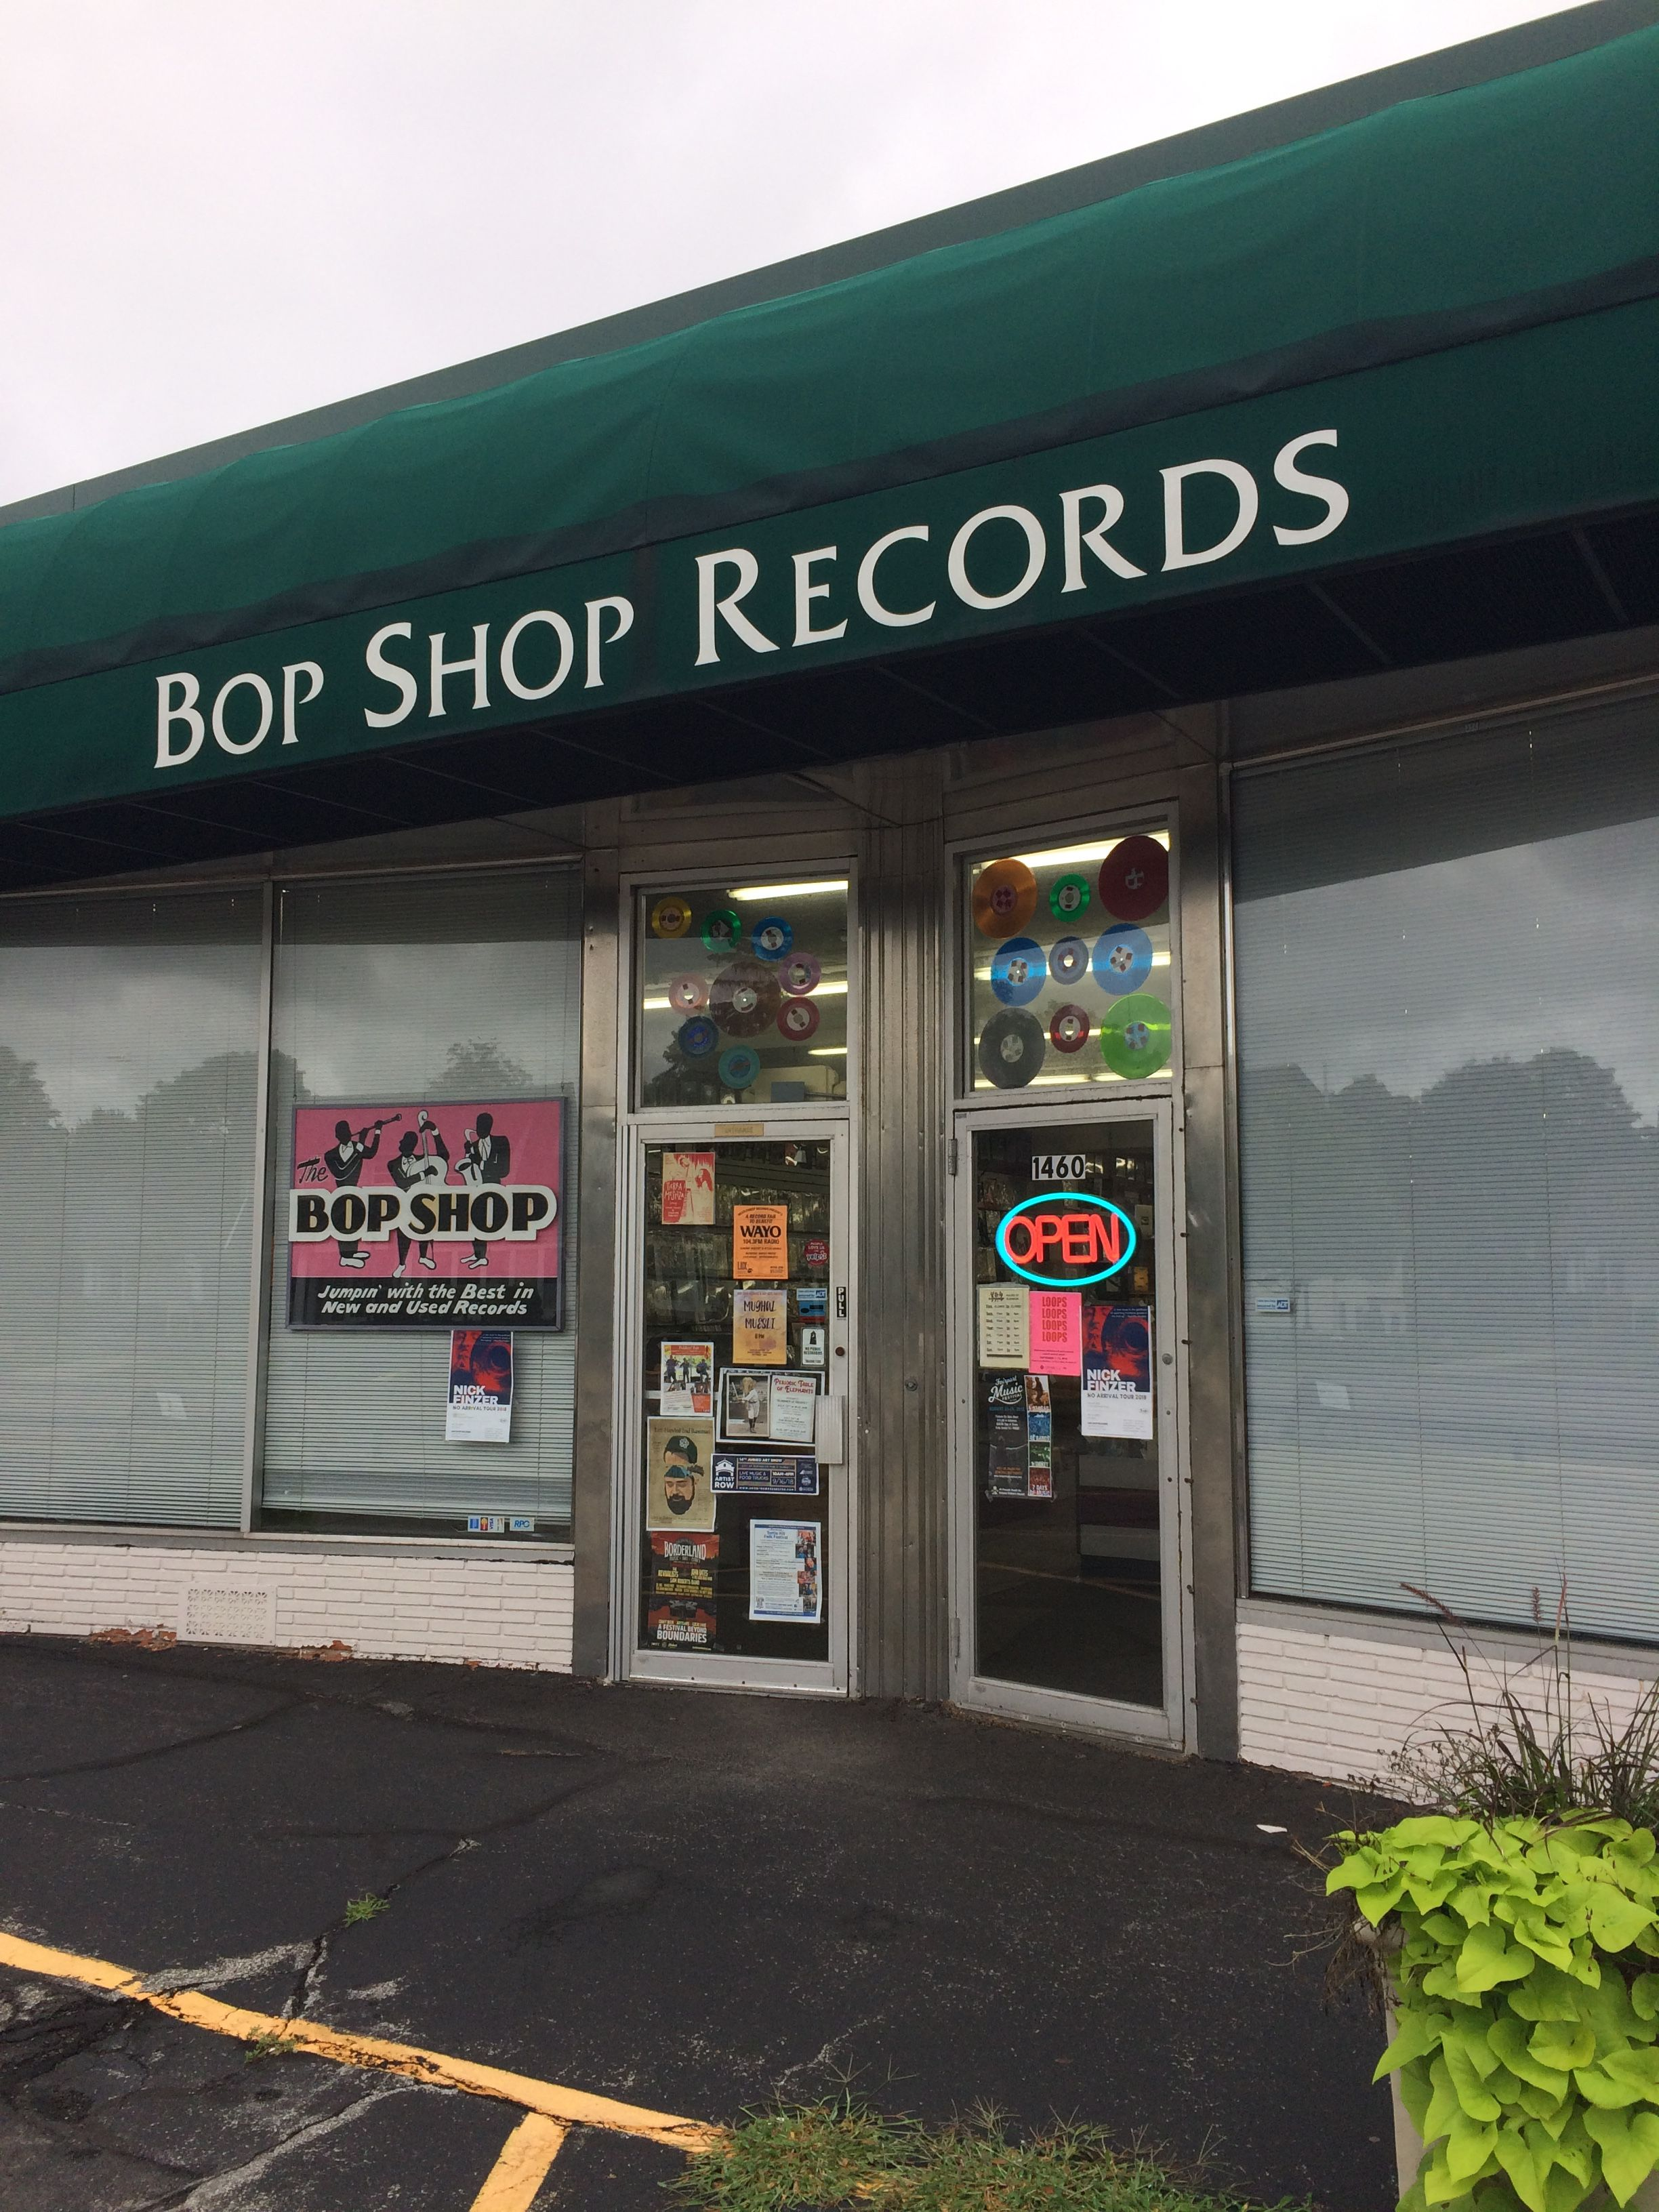 Bop Shop Records: Rochester, NY. Aug 2018. Great selection